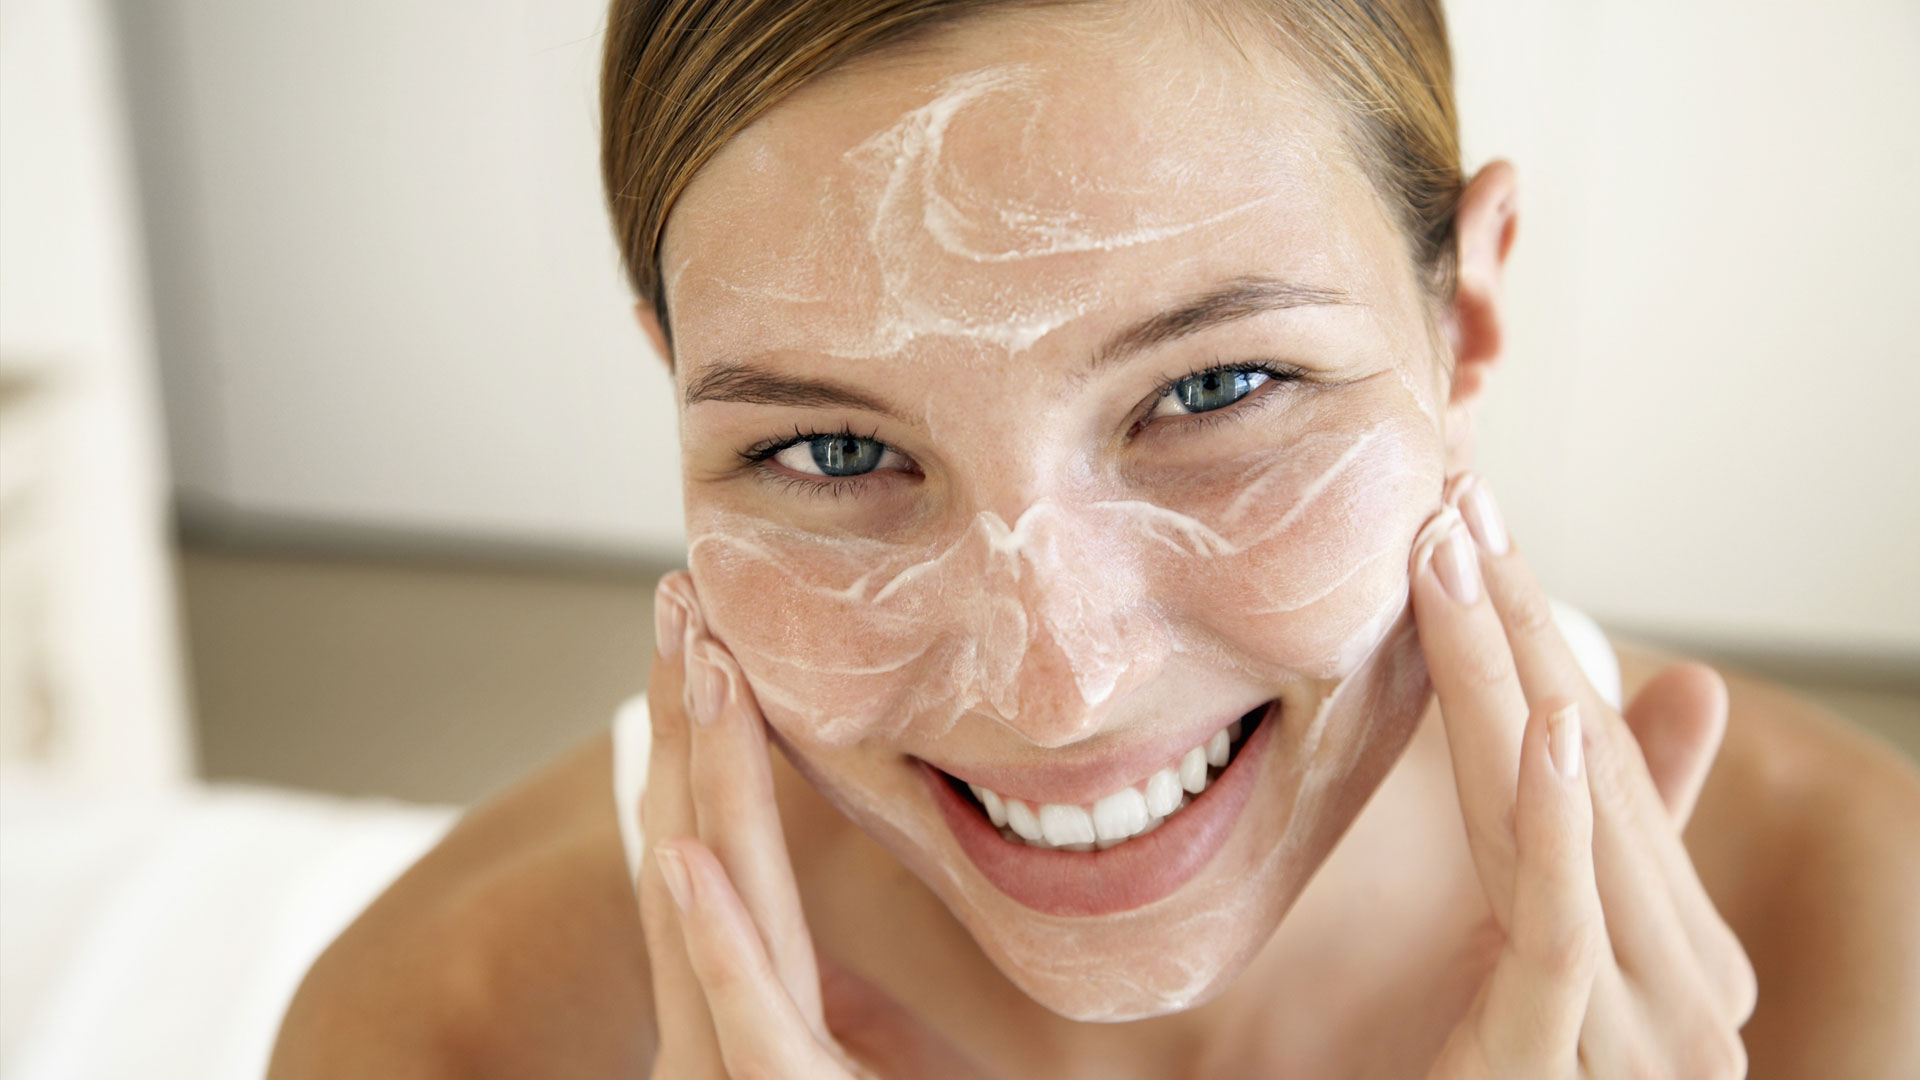 DIY steam facial treatment